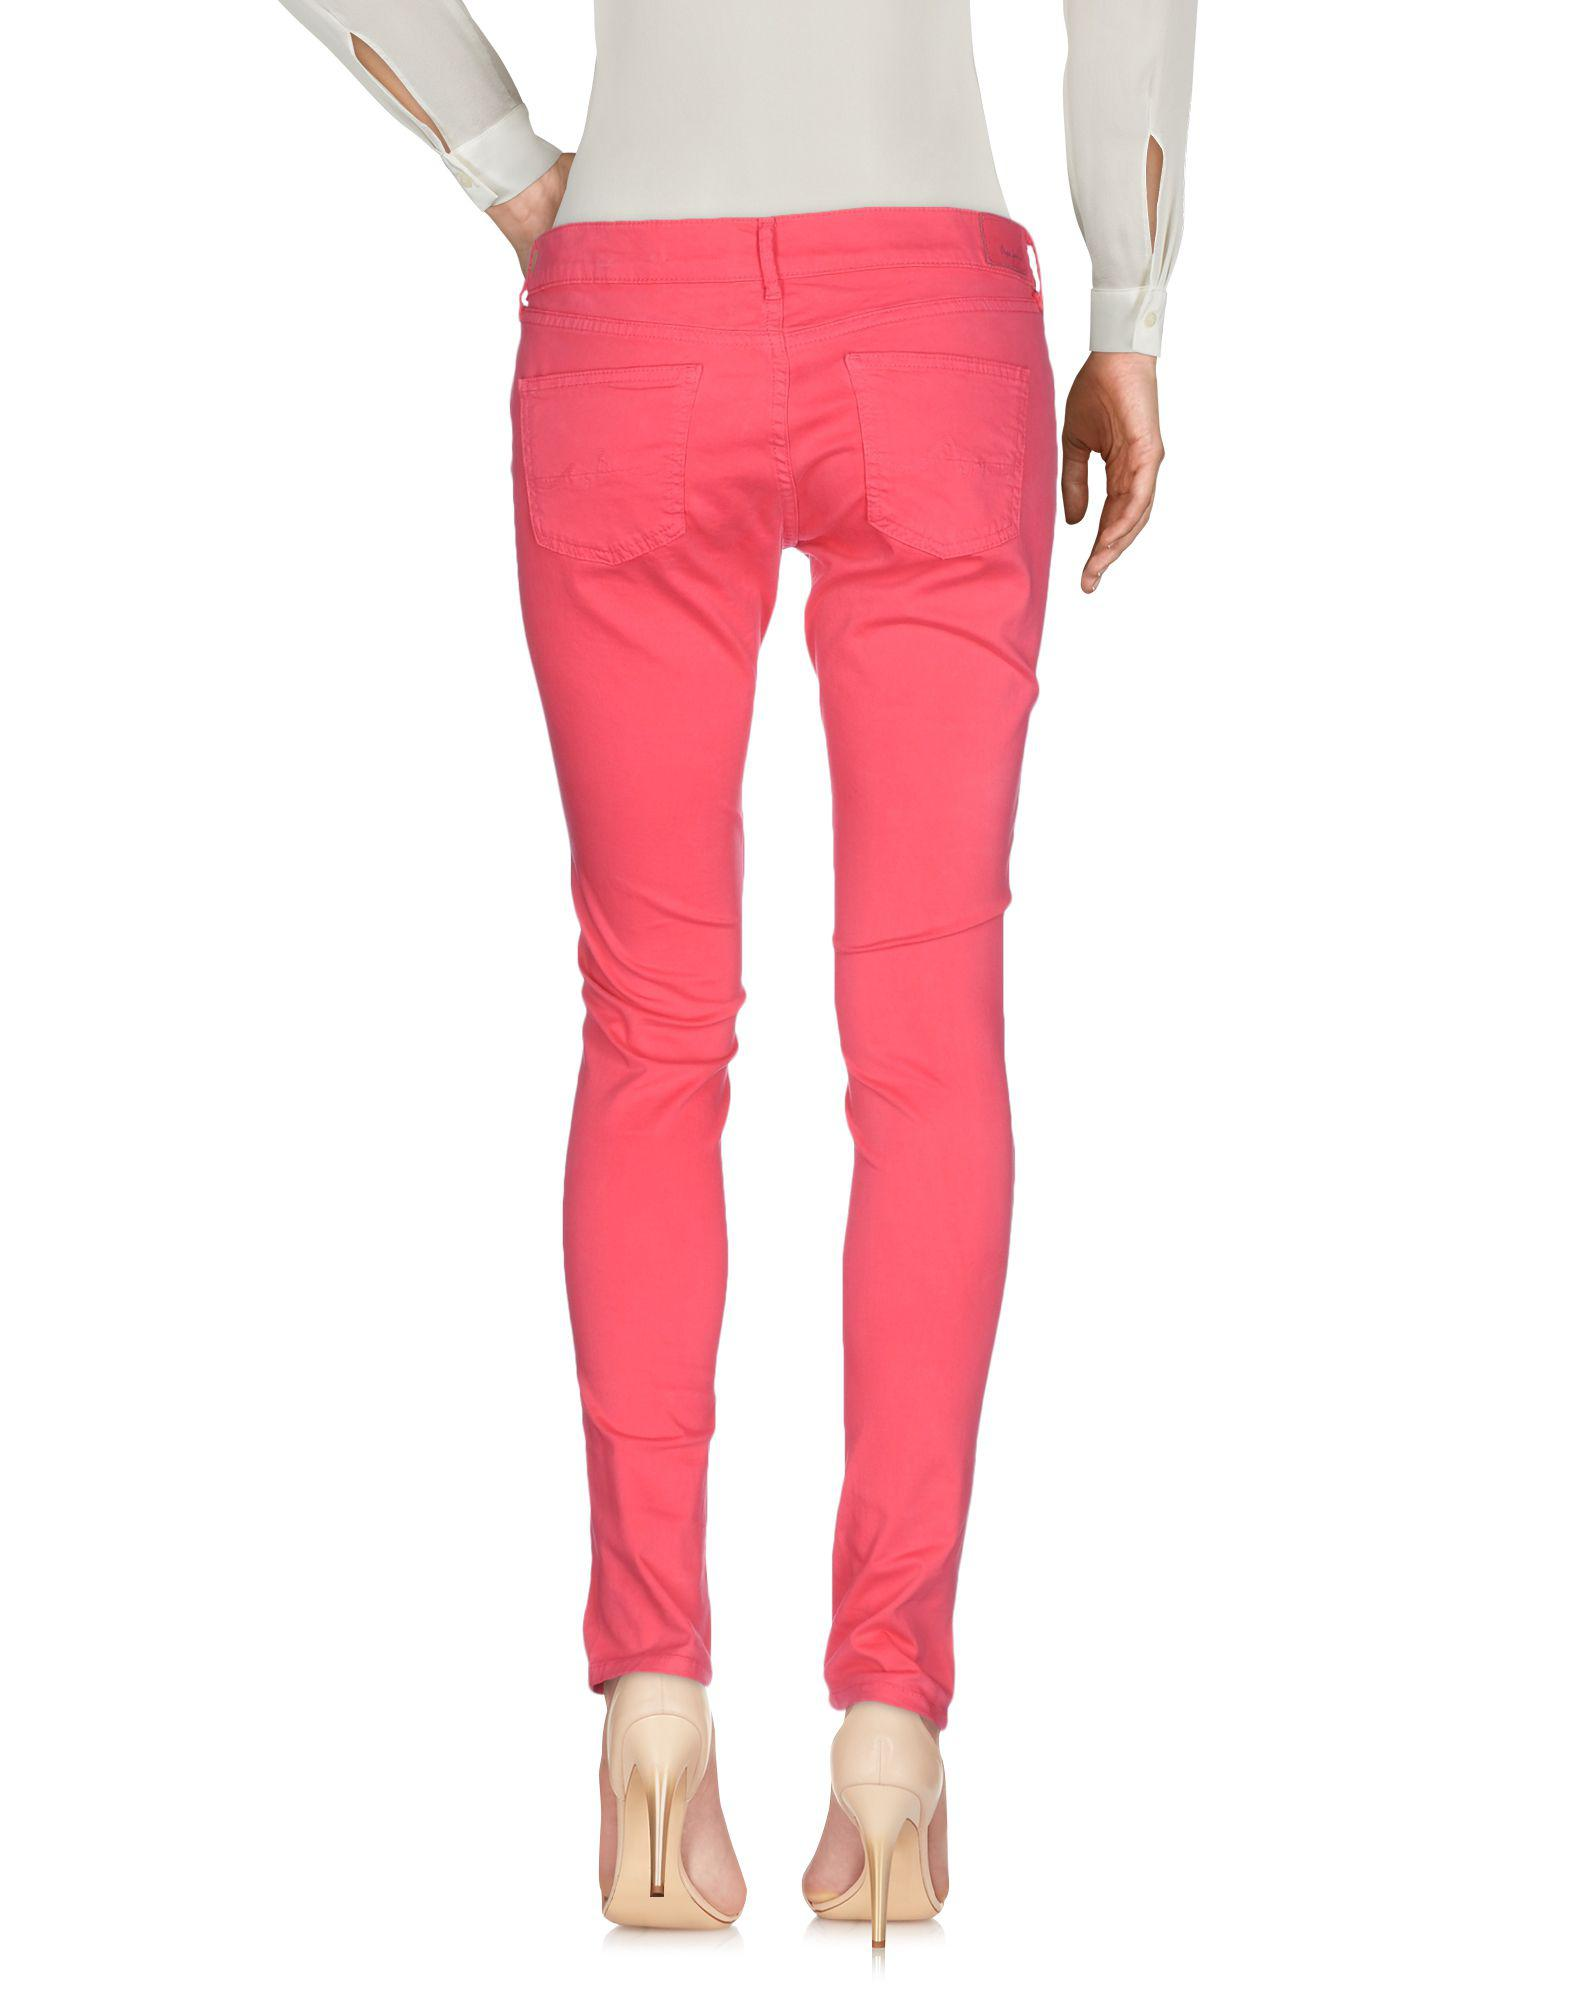 Pepe Jeans Cotton Casual Trouser in Coral (Pink)